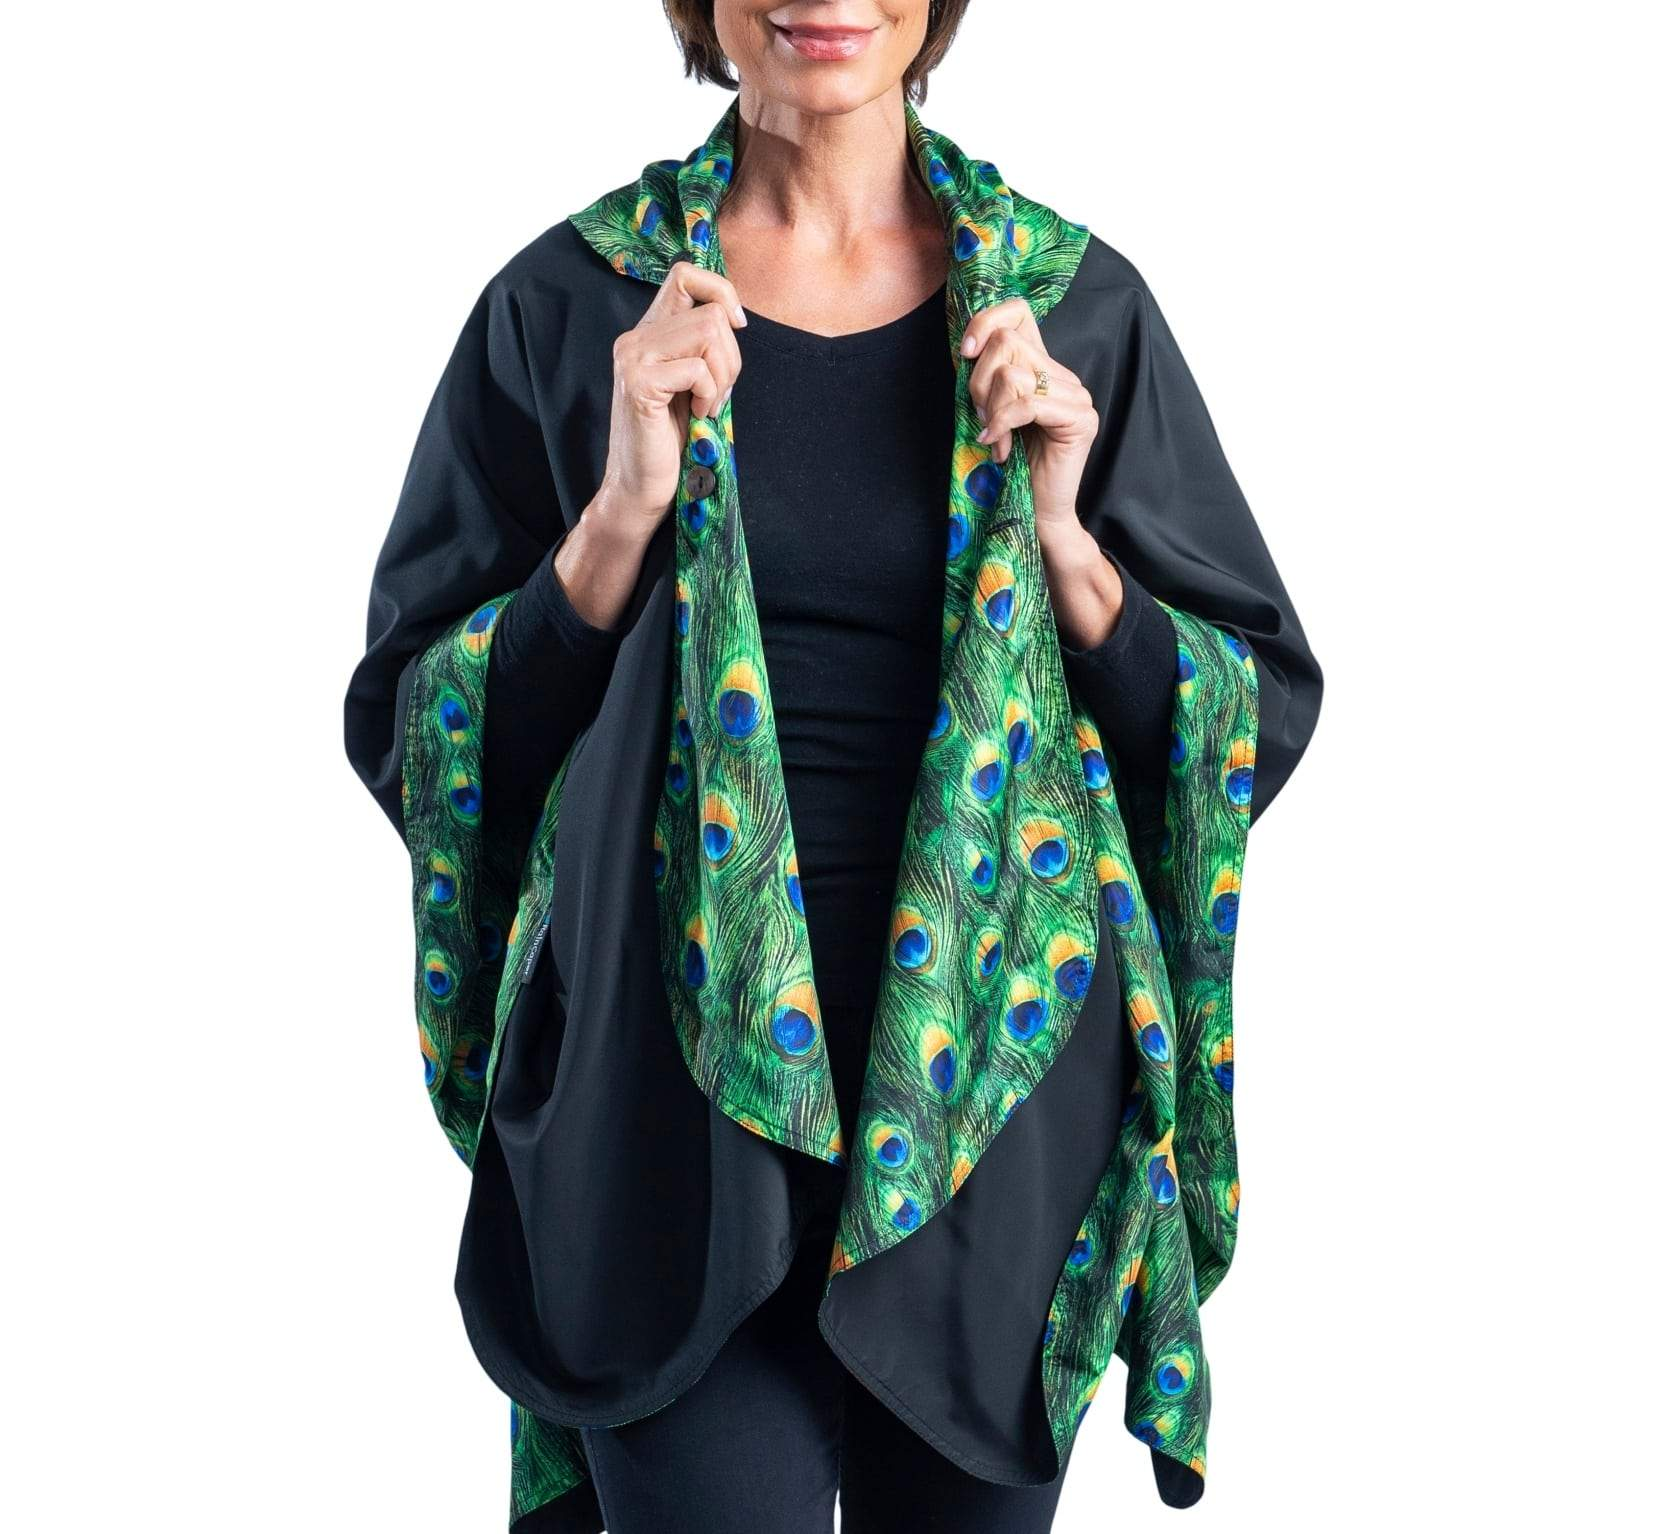 Women wearing a Black & Peacock RainCaper travel cape with the Black side out, revealing the Peacock print at the lapels and cuffs